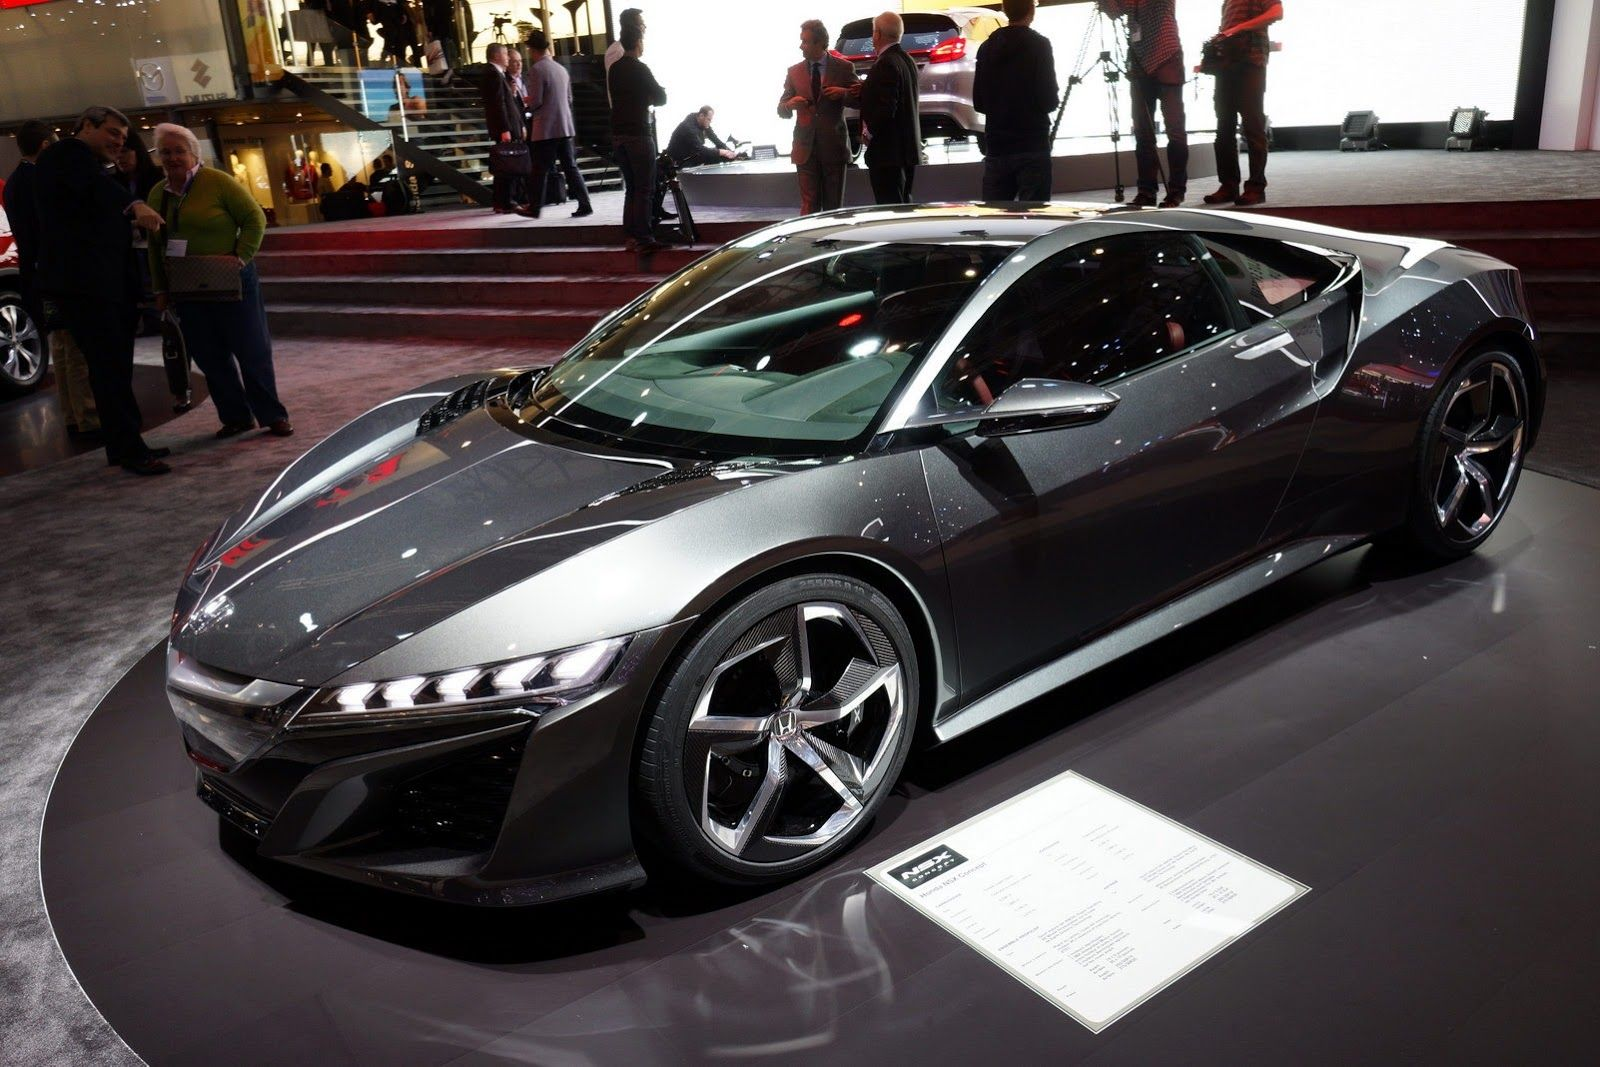 New Honda Nsx Sold Out In The Uk Before Even Being Shown In Public